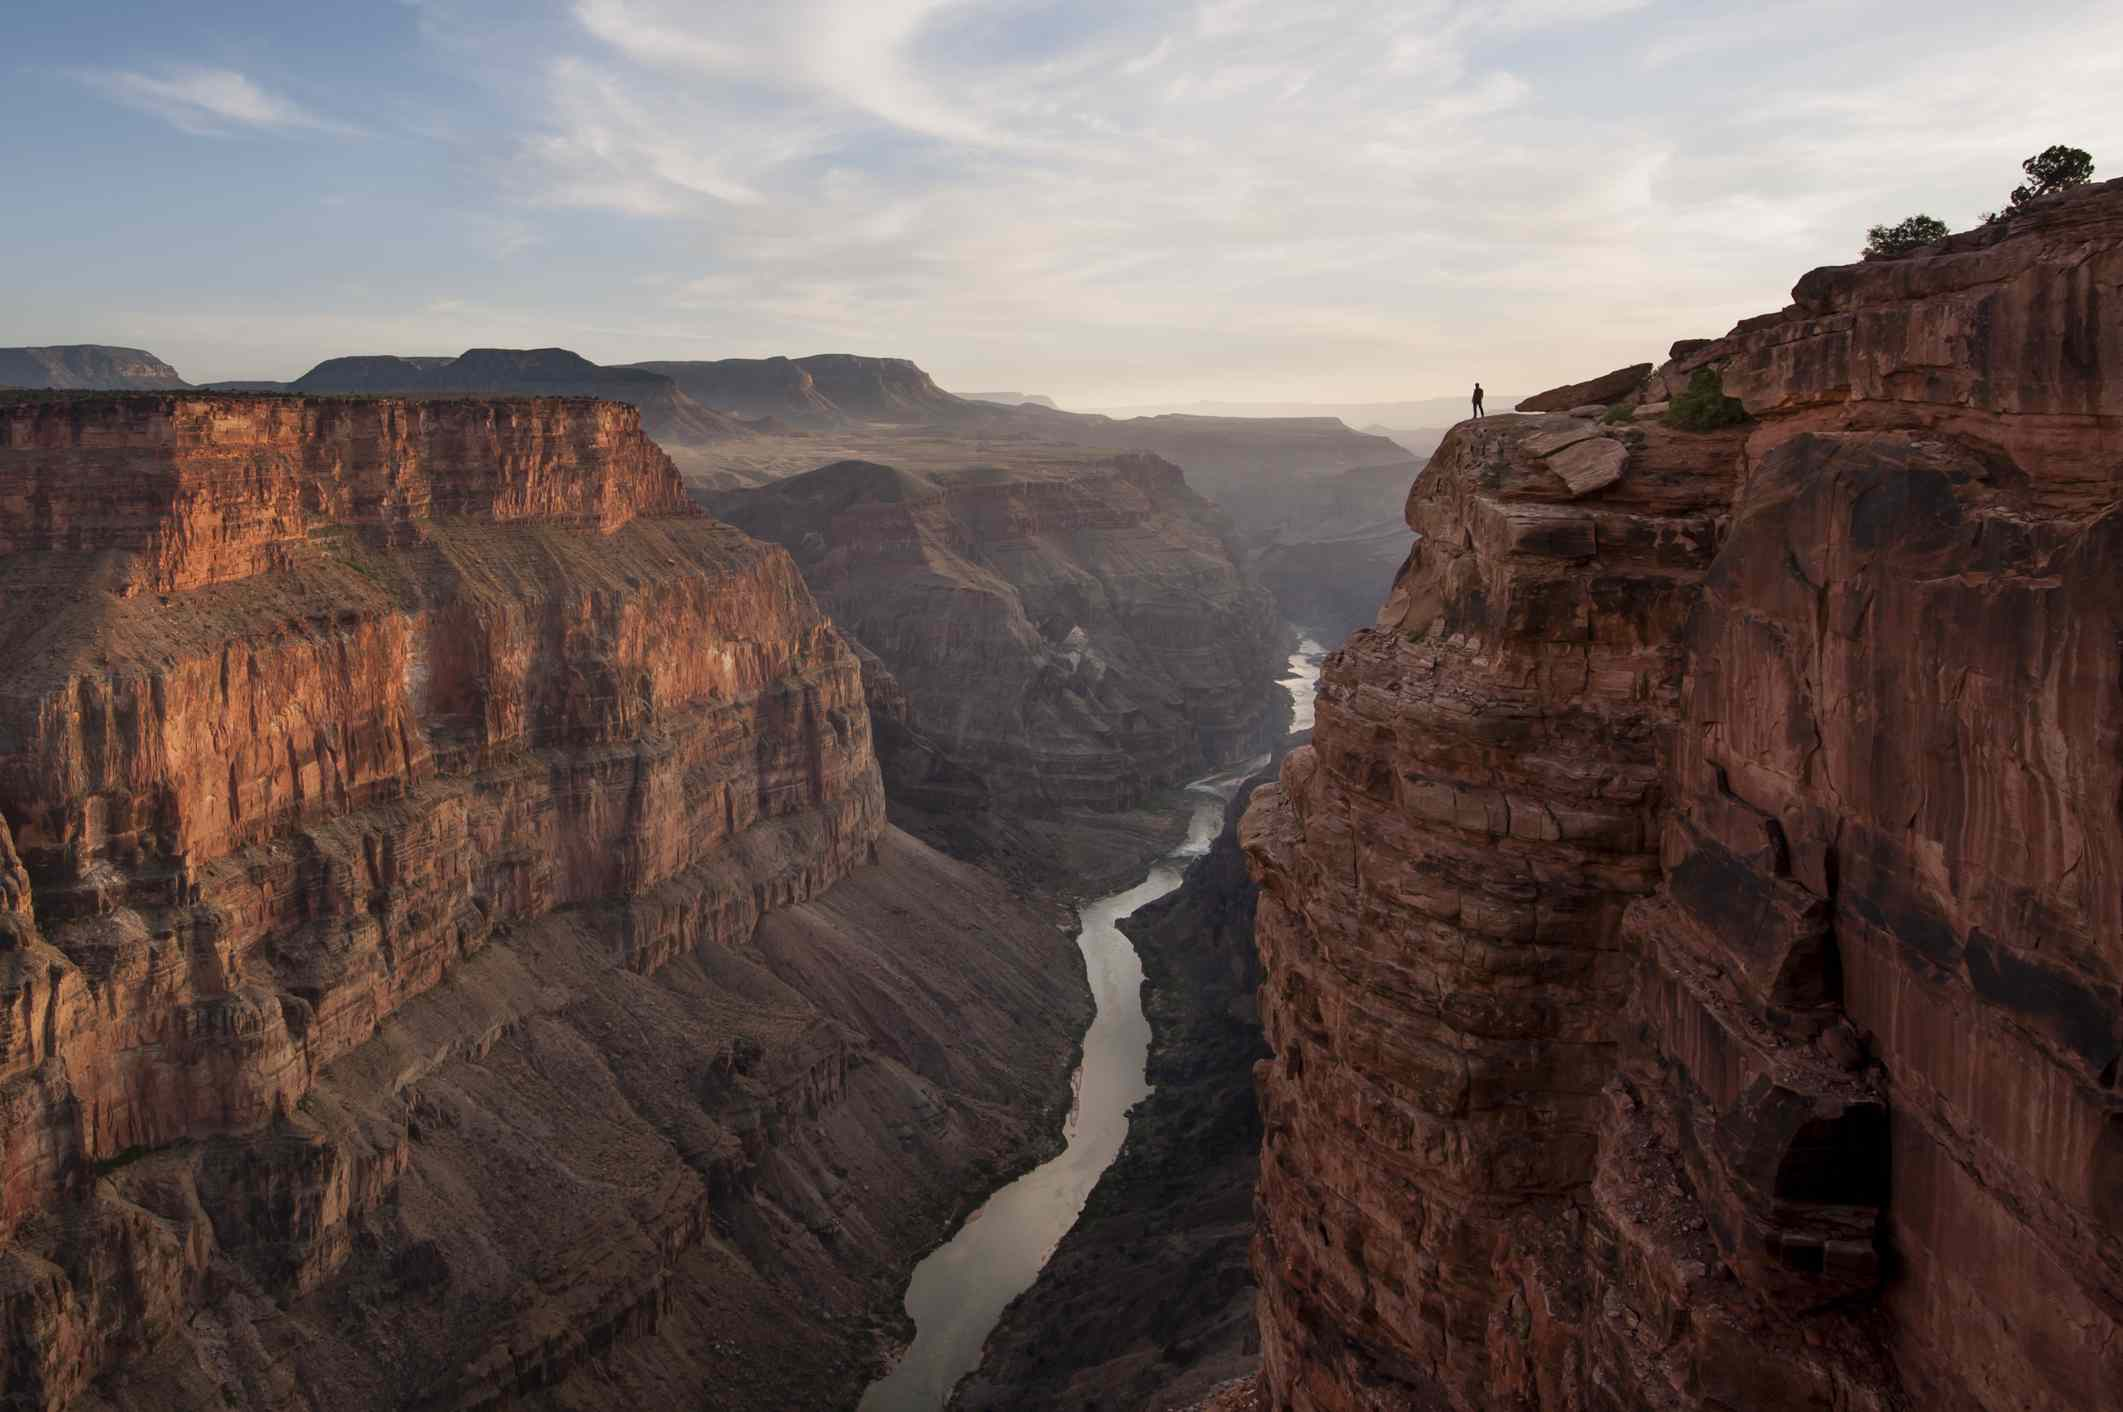 A man looking out over a canyon and river. Grand Canyon, Arizona